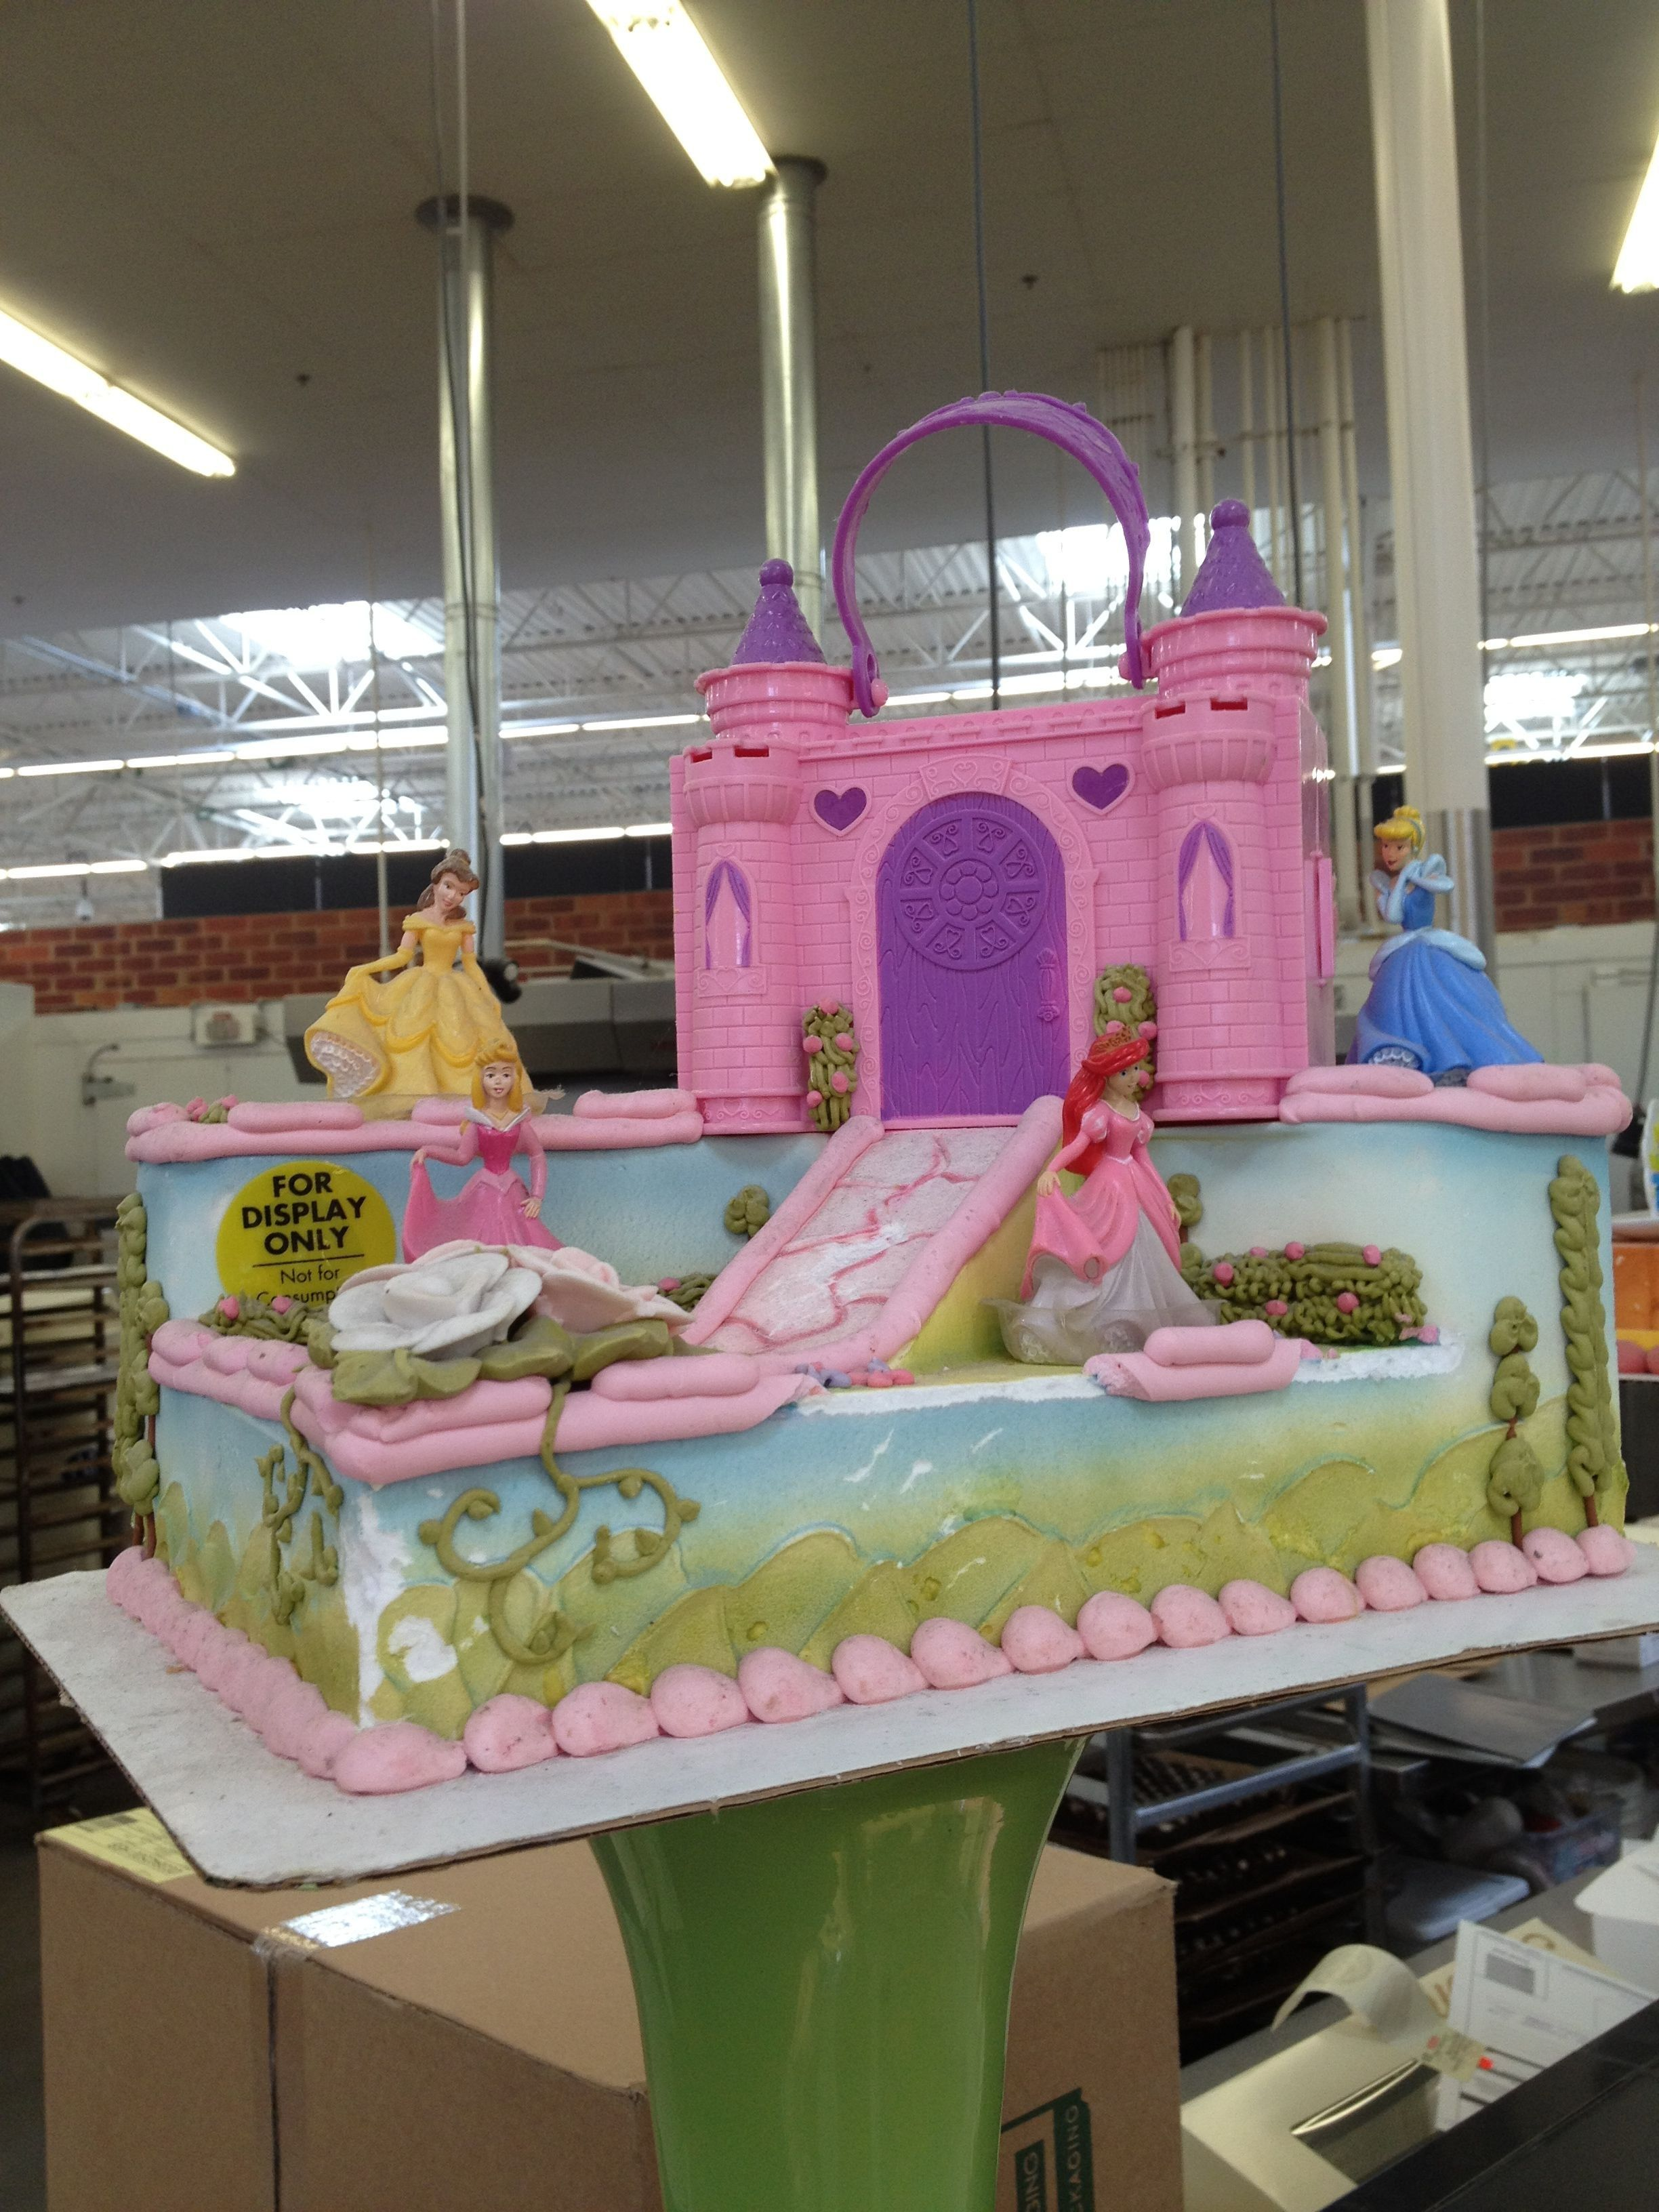 Great Image Of Heb Birthday Cakes Kaylee Loves This Princess Cake At